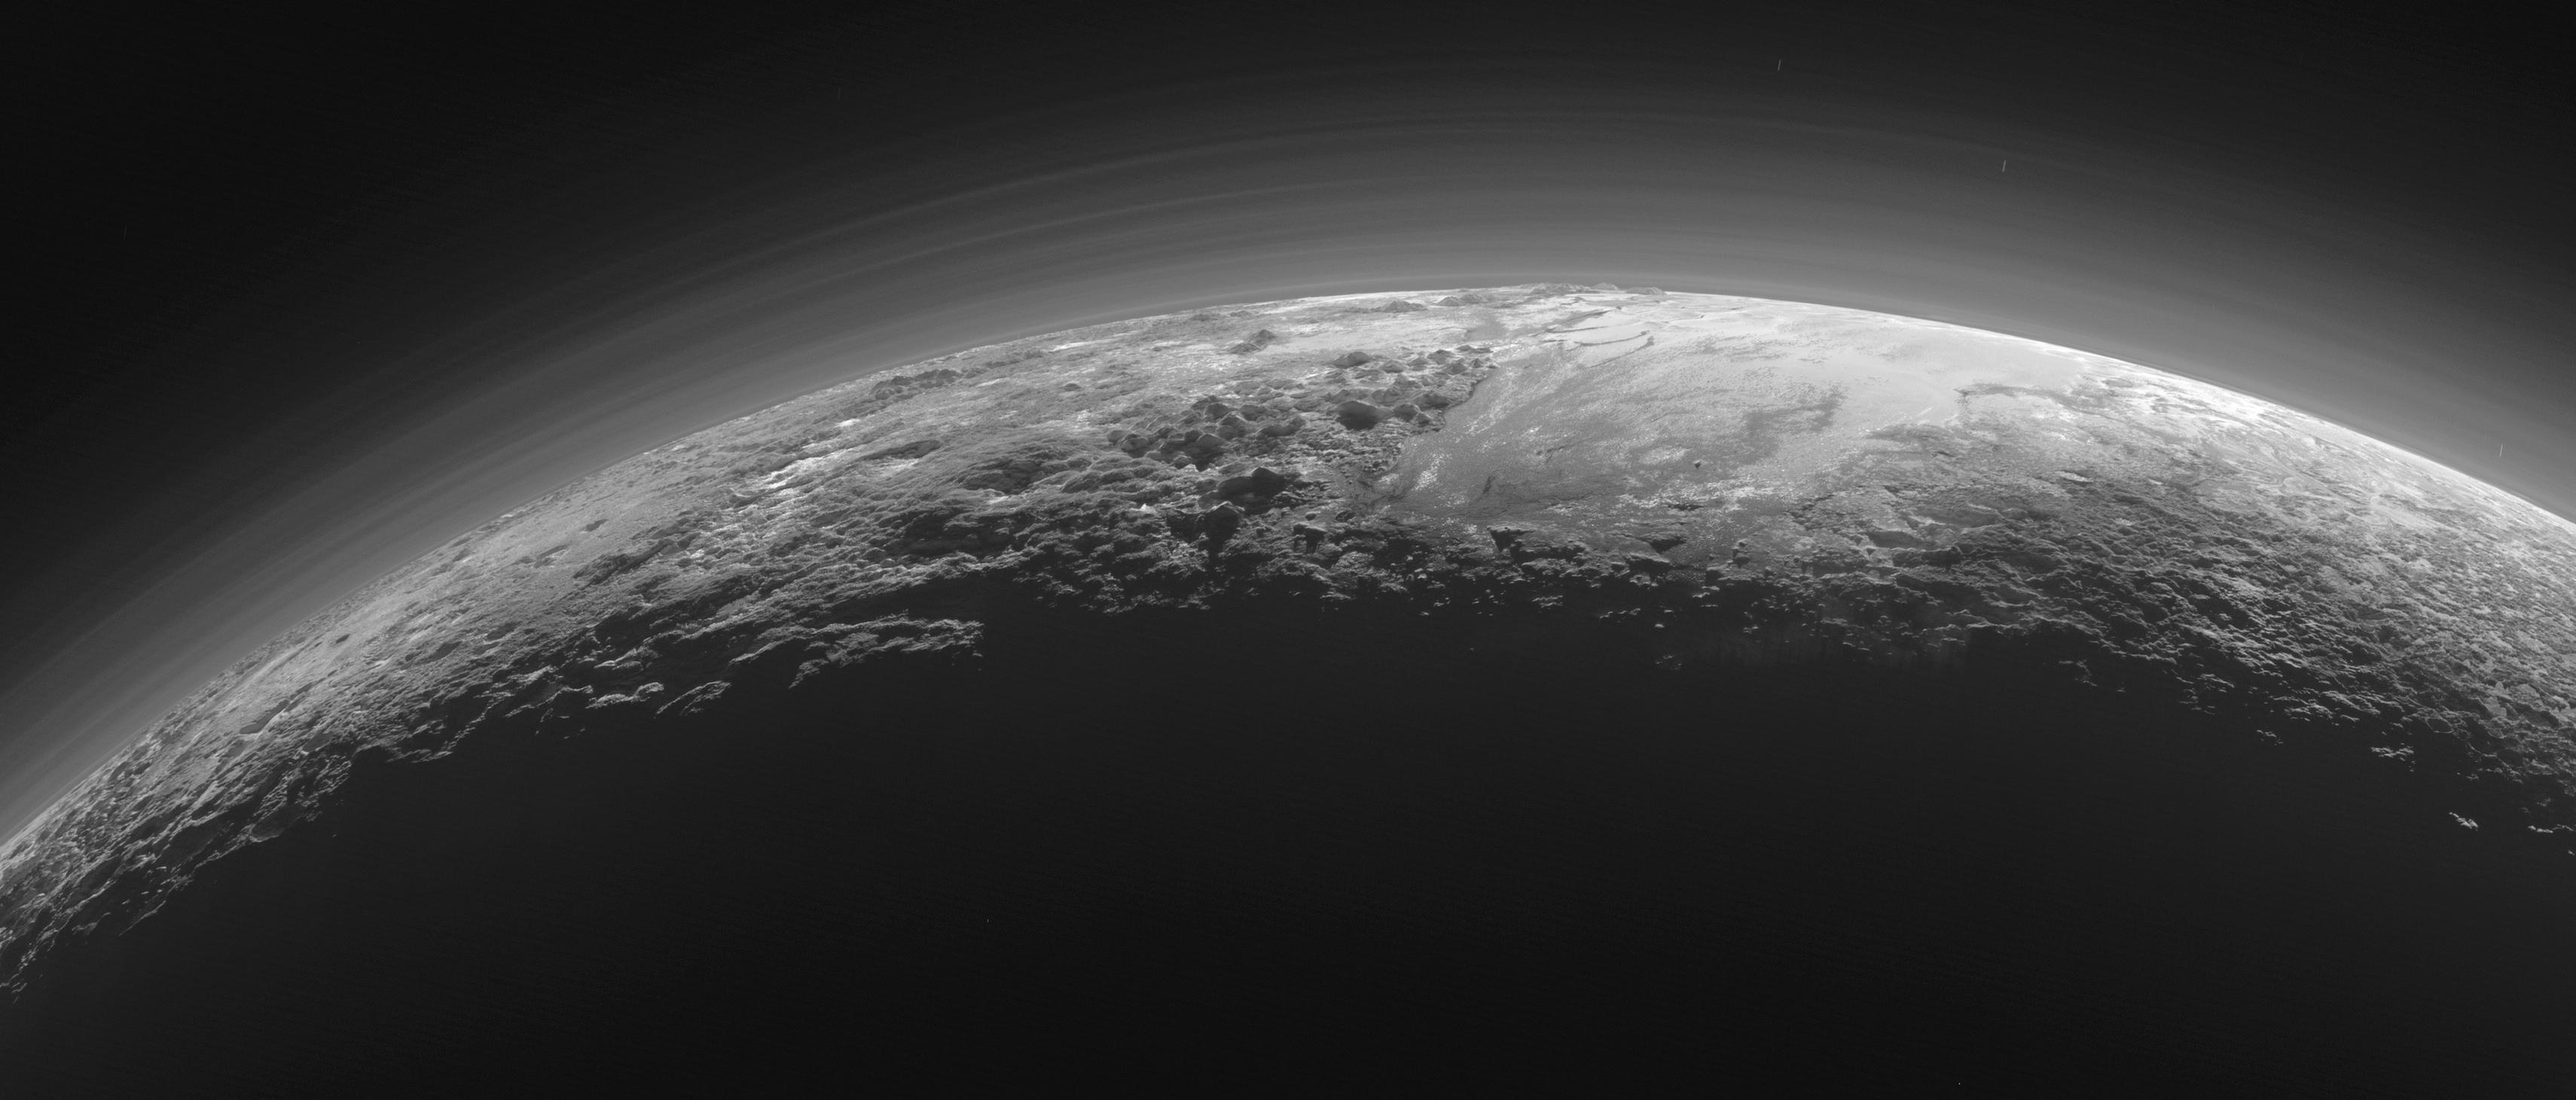 Mountains in the haze on Pluto